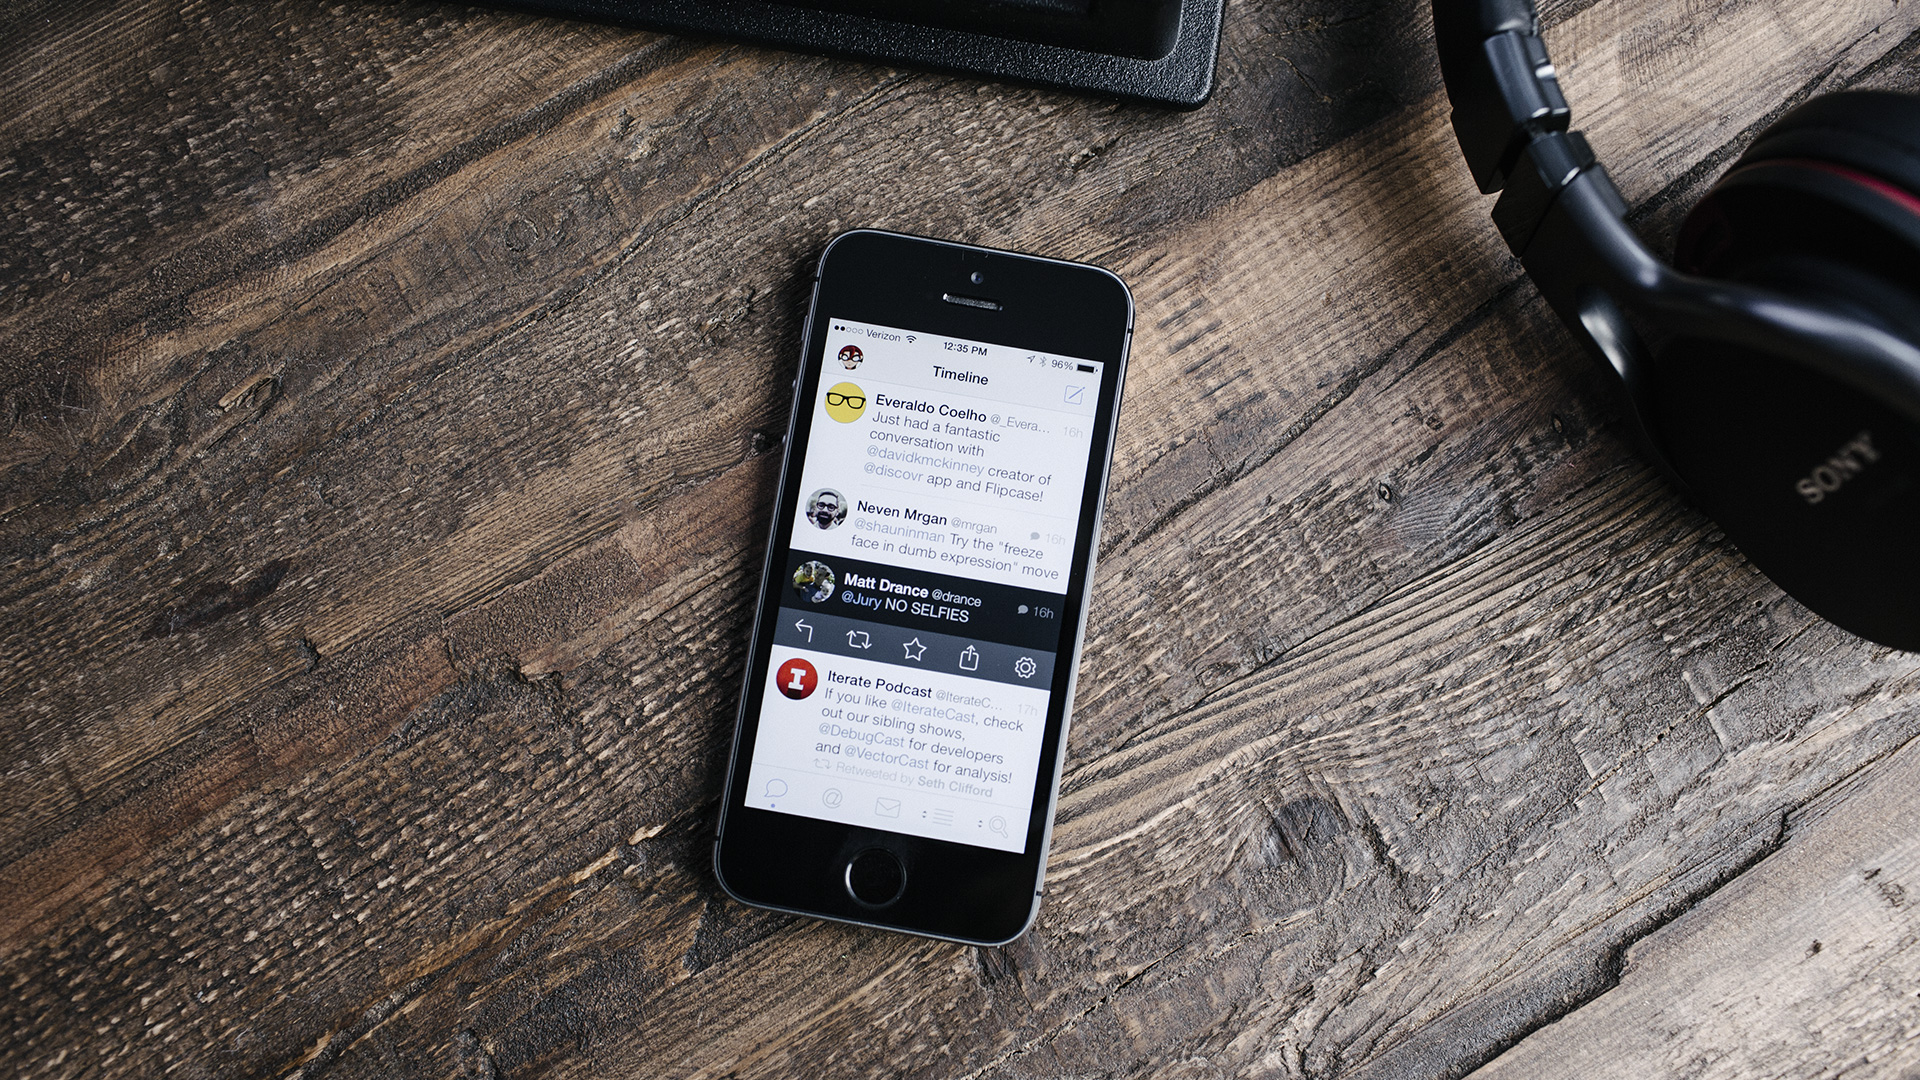 Tweetbot 3 Makes The Case For 3rd-Party Twitter Apps With